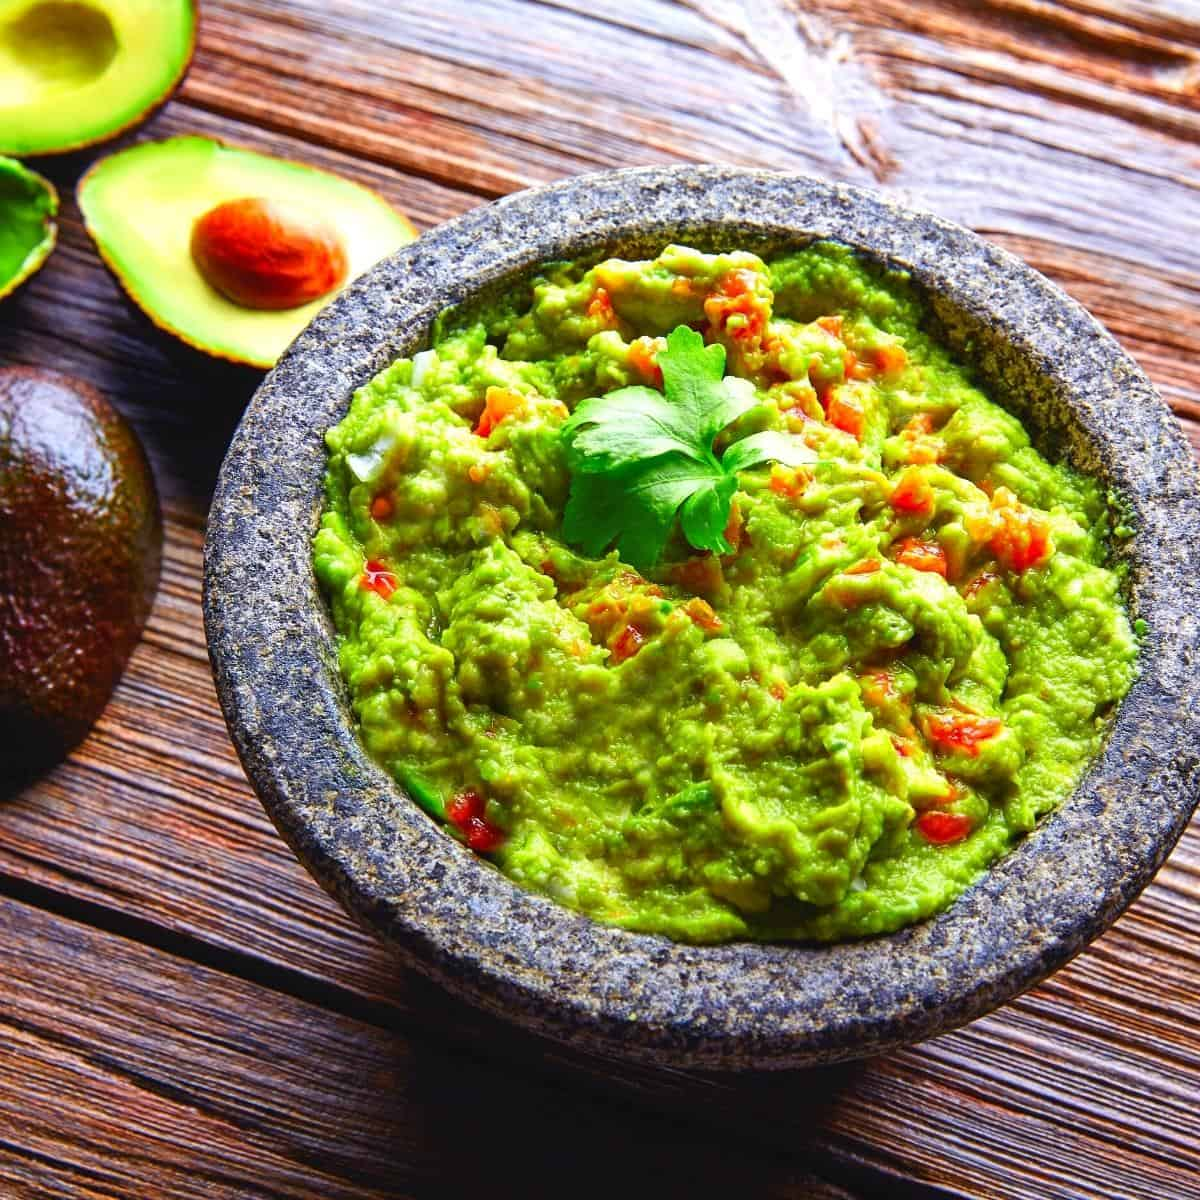 How to make guacamole on Slimming World